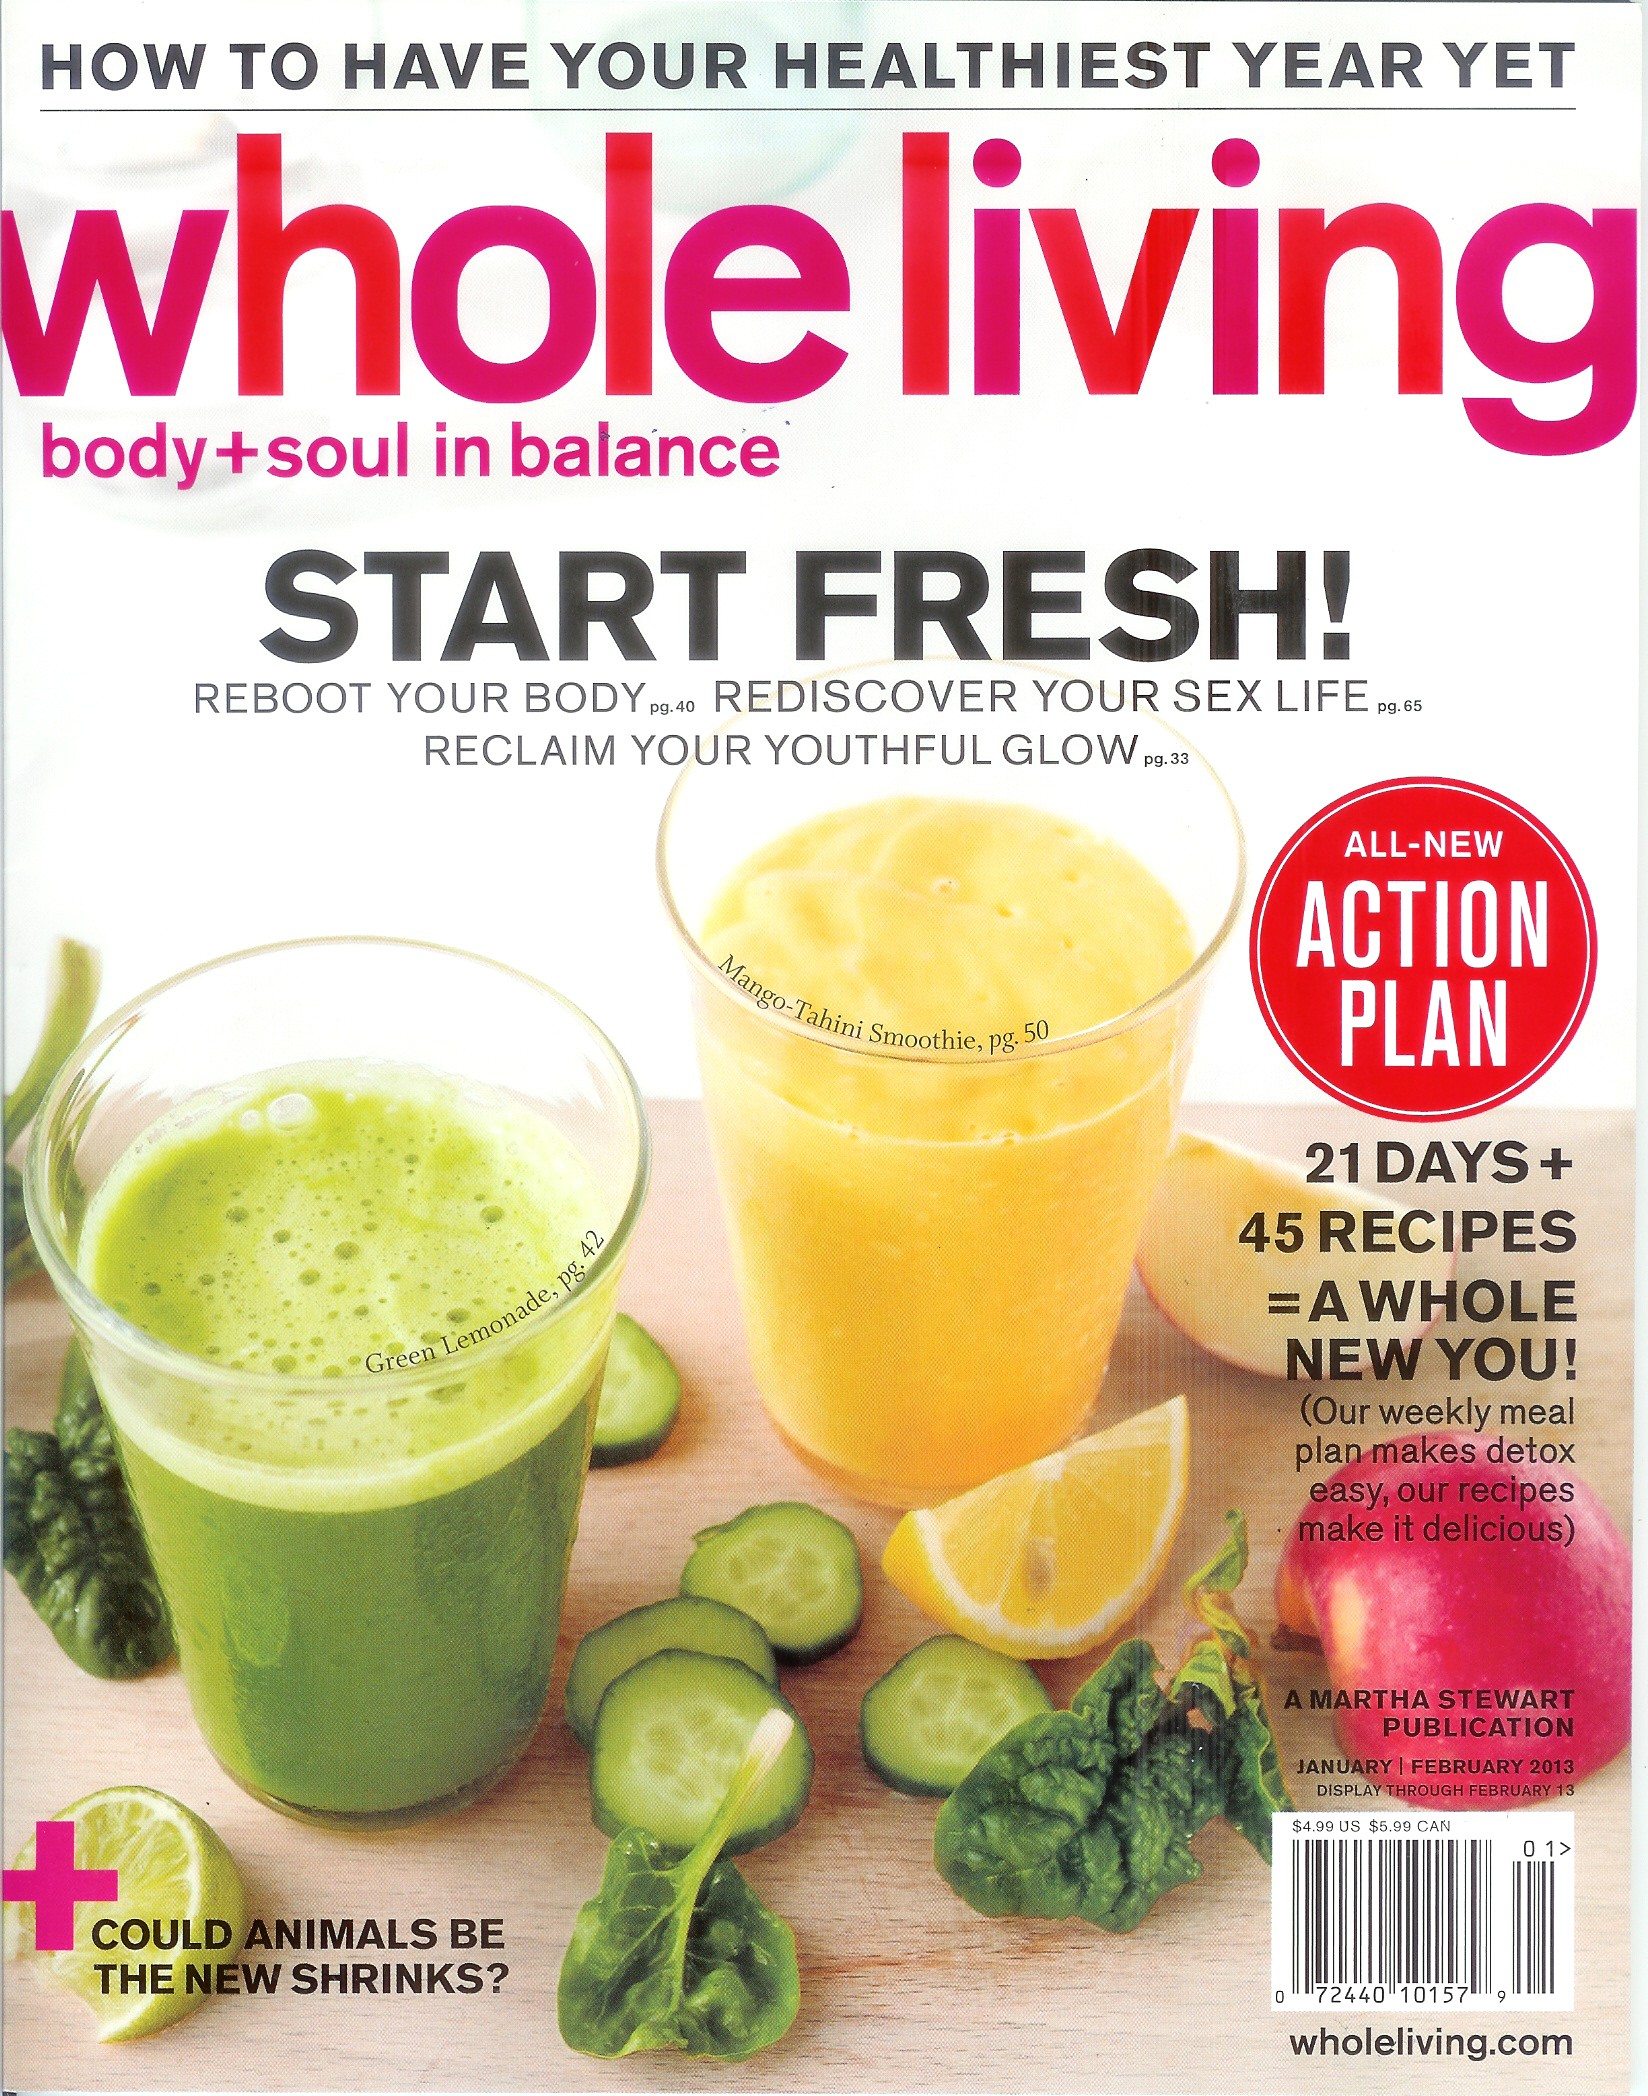 wholelivingcover